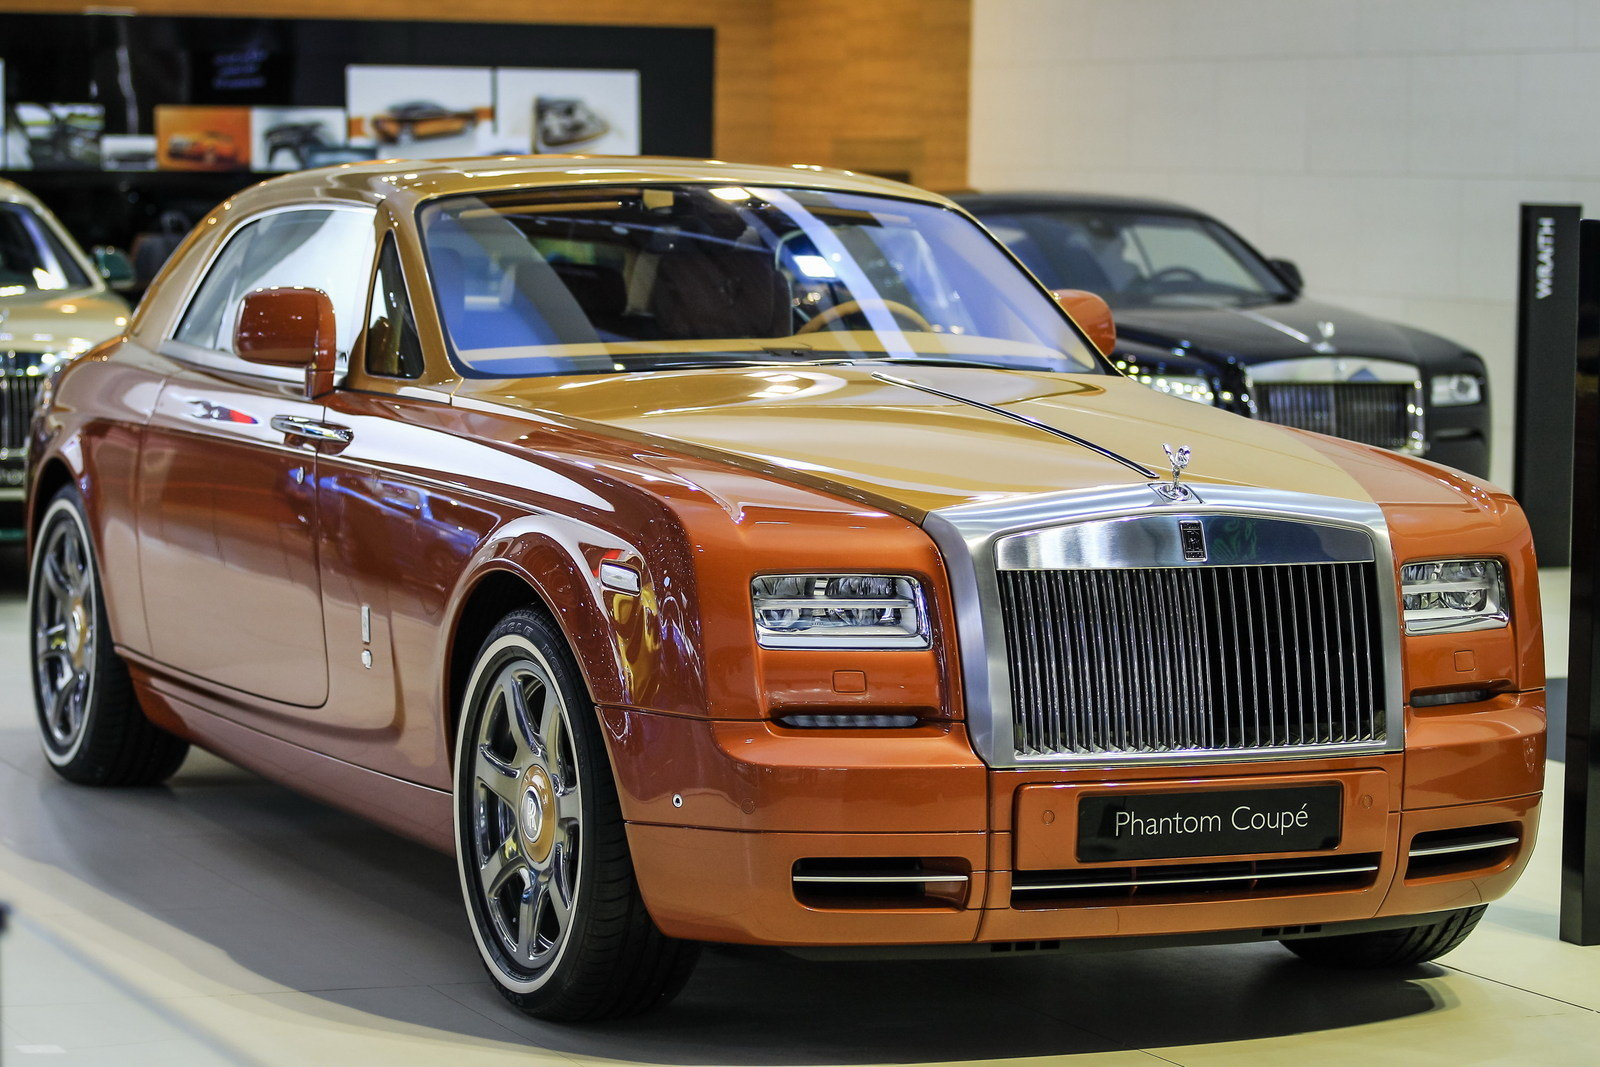 2015 Rolls Royce Phantom Coupe Tiger Edition - Picture ...